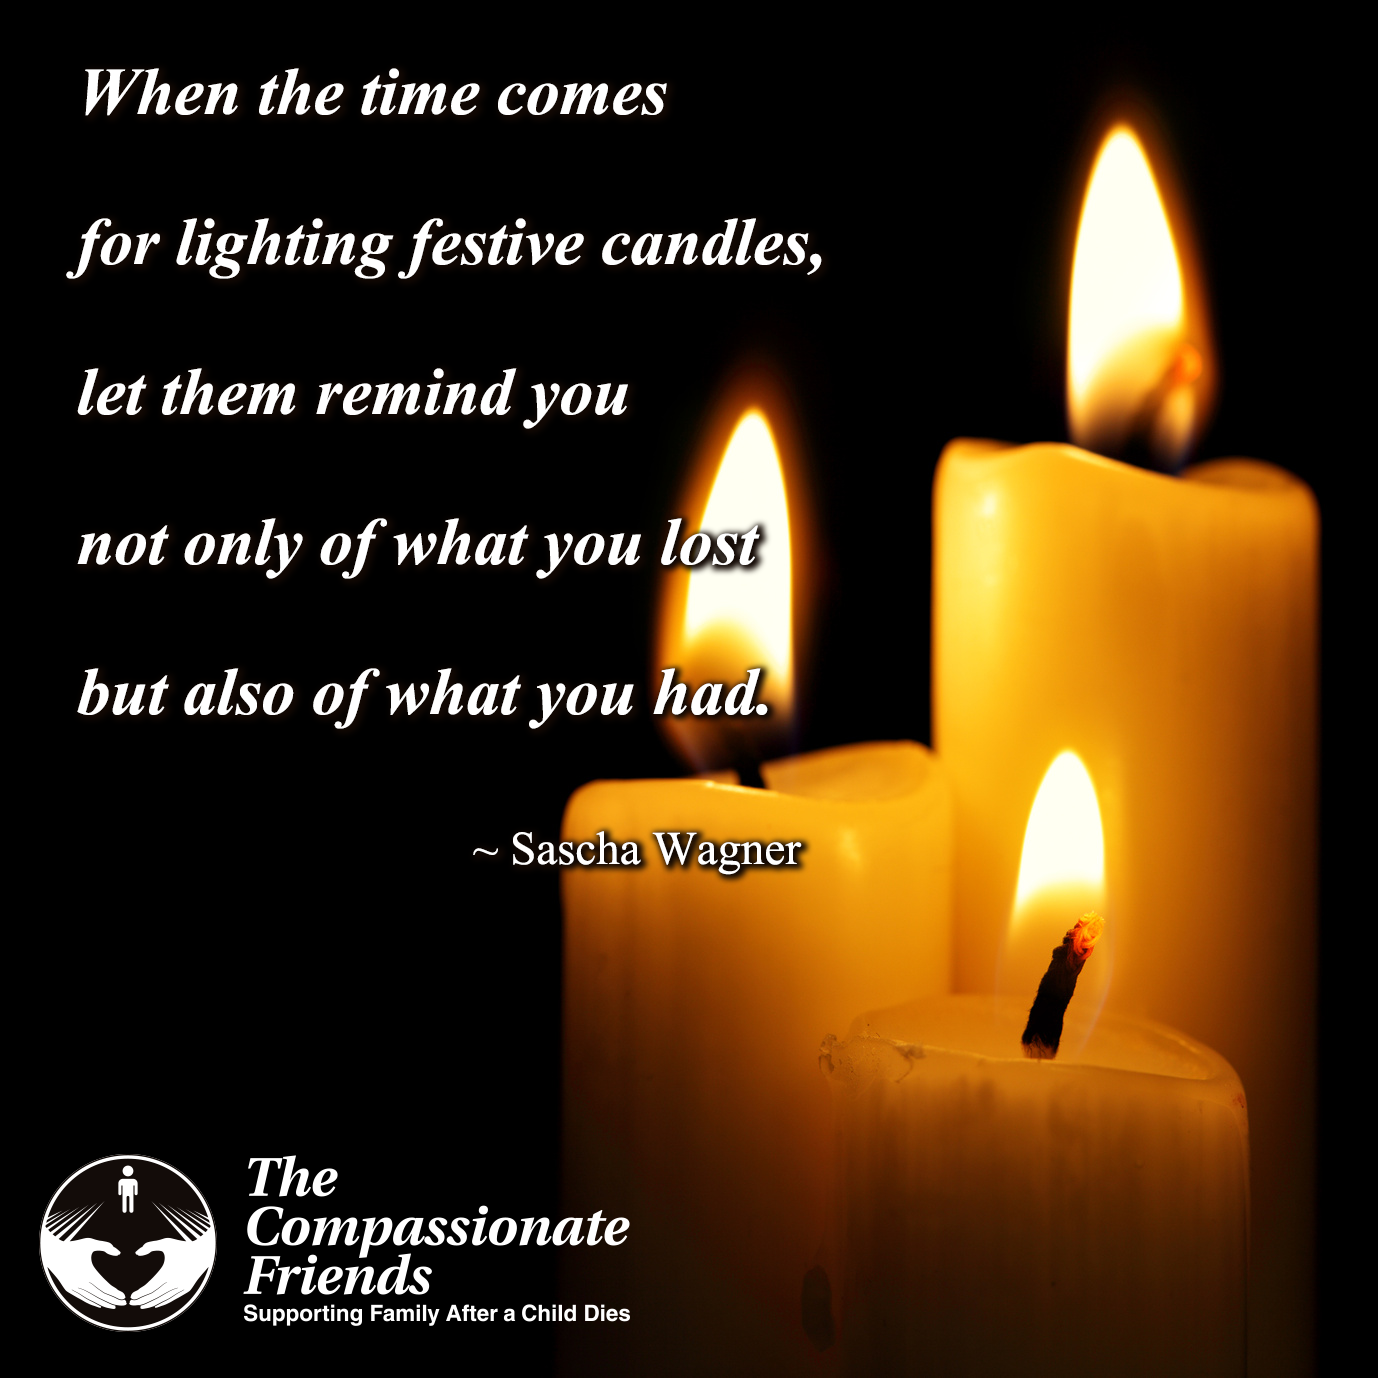 Worldwide candle lighting the compassionate friends providing